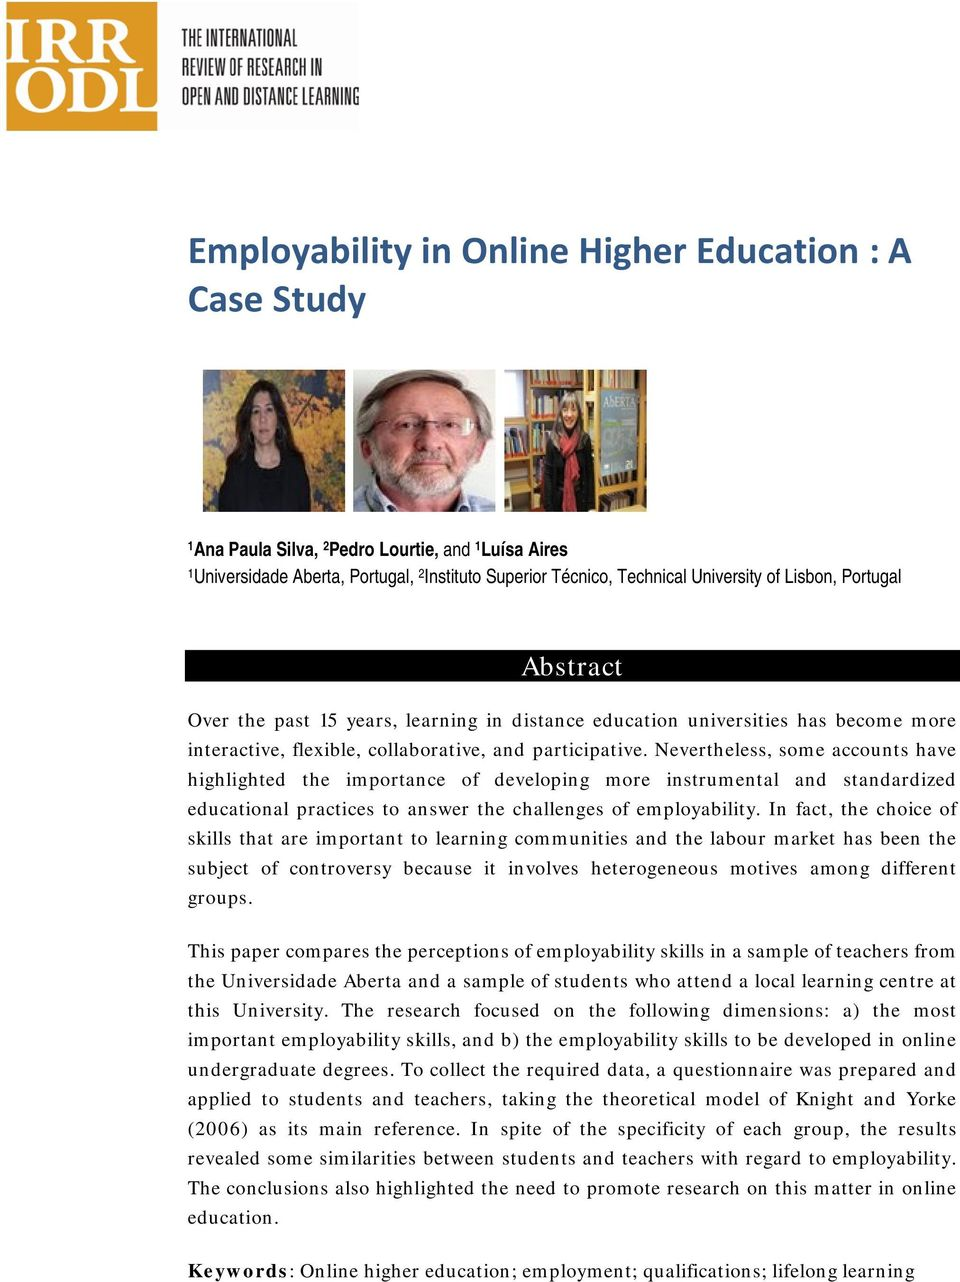 Nevertheless, some accounts have highlighted the importance of developing more instrumental and standardized educational practices to answer the challenges of employability.